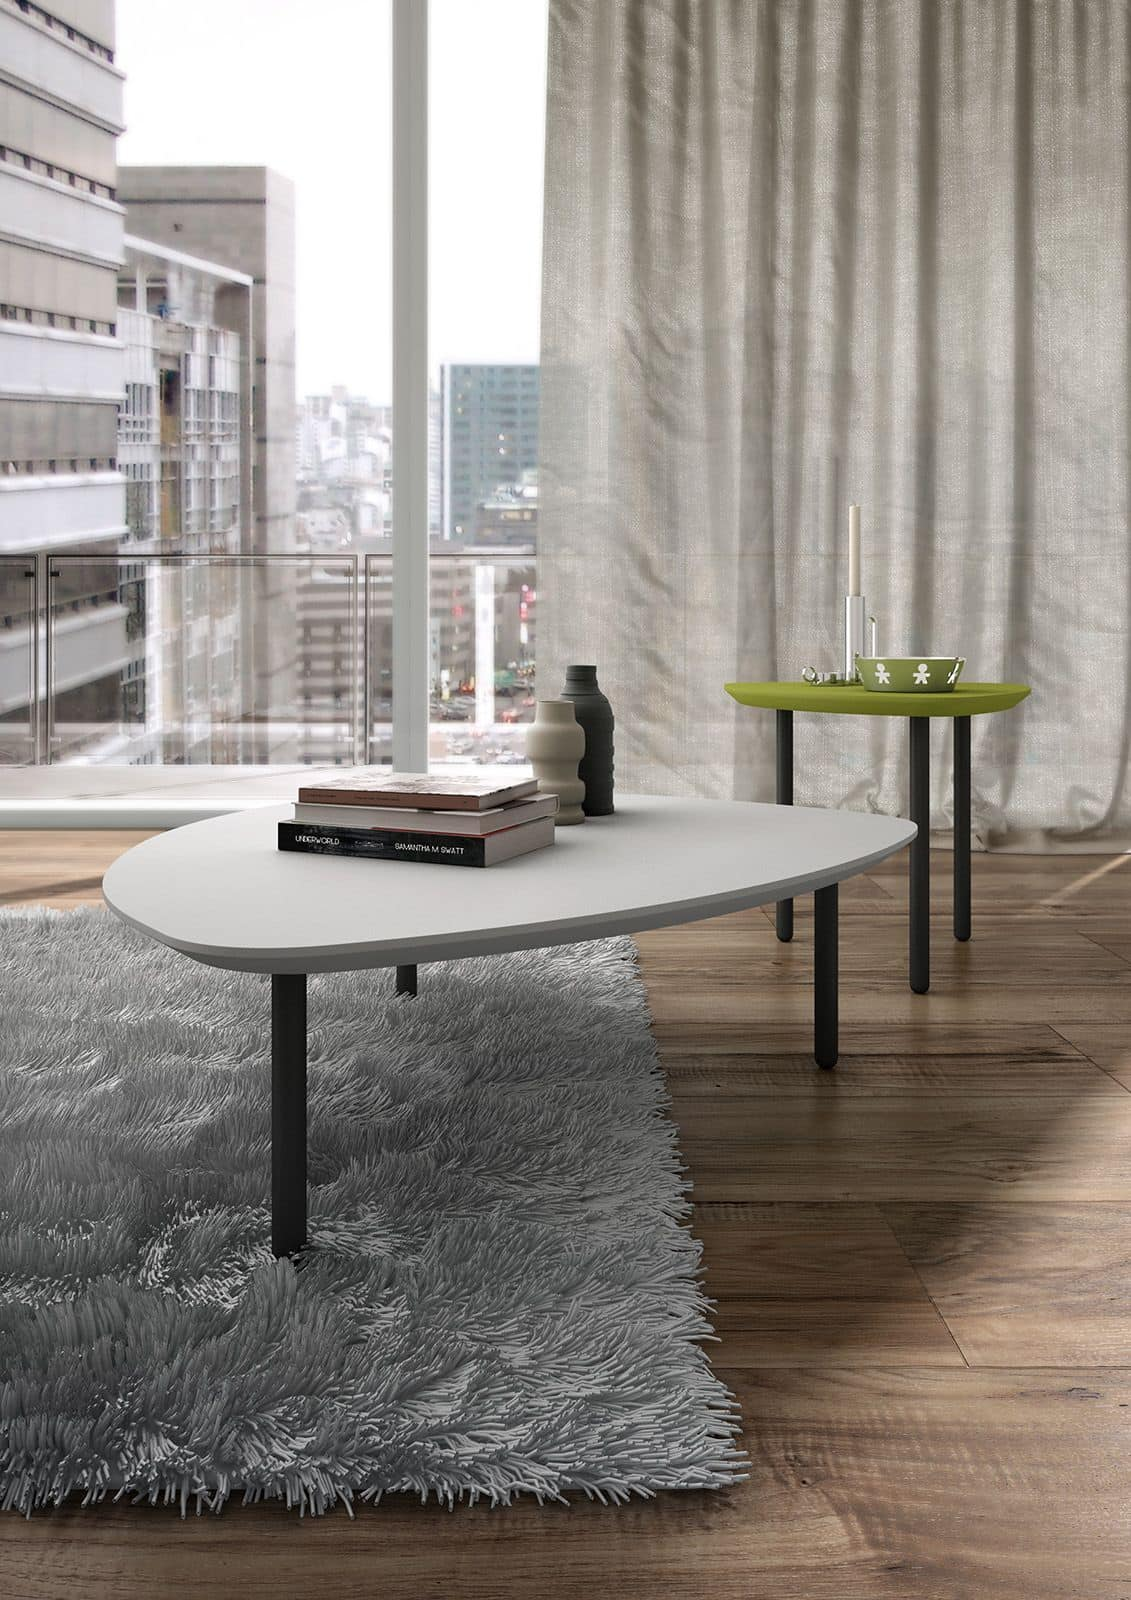 Eos, Coffee table with triangular shape with rounded corners